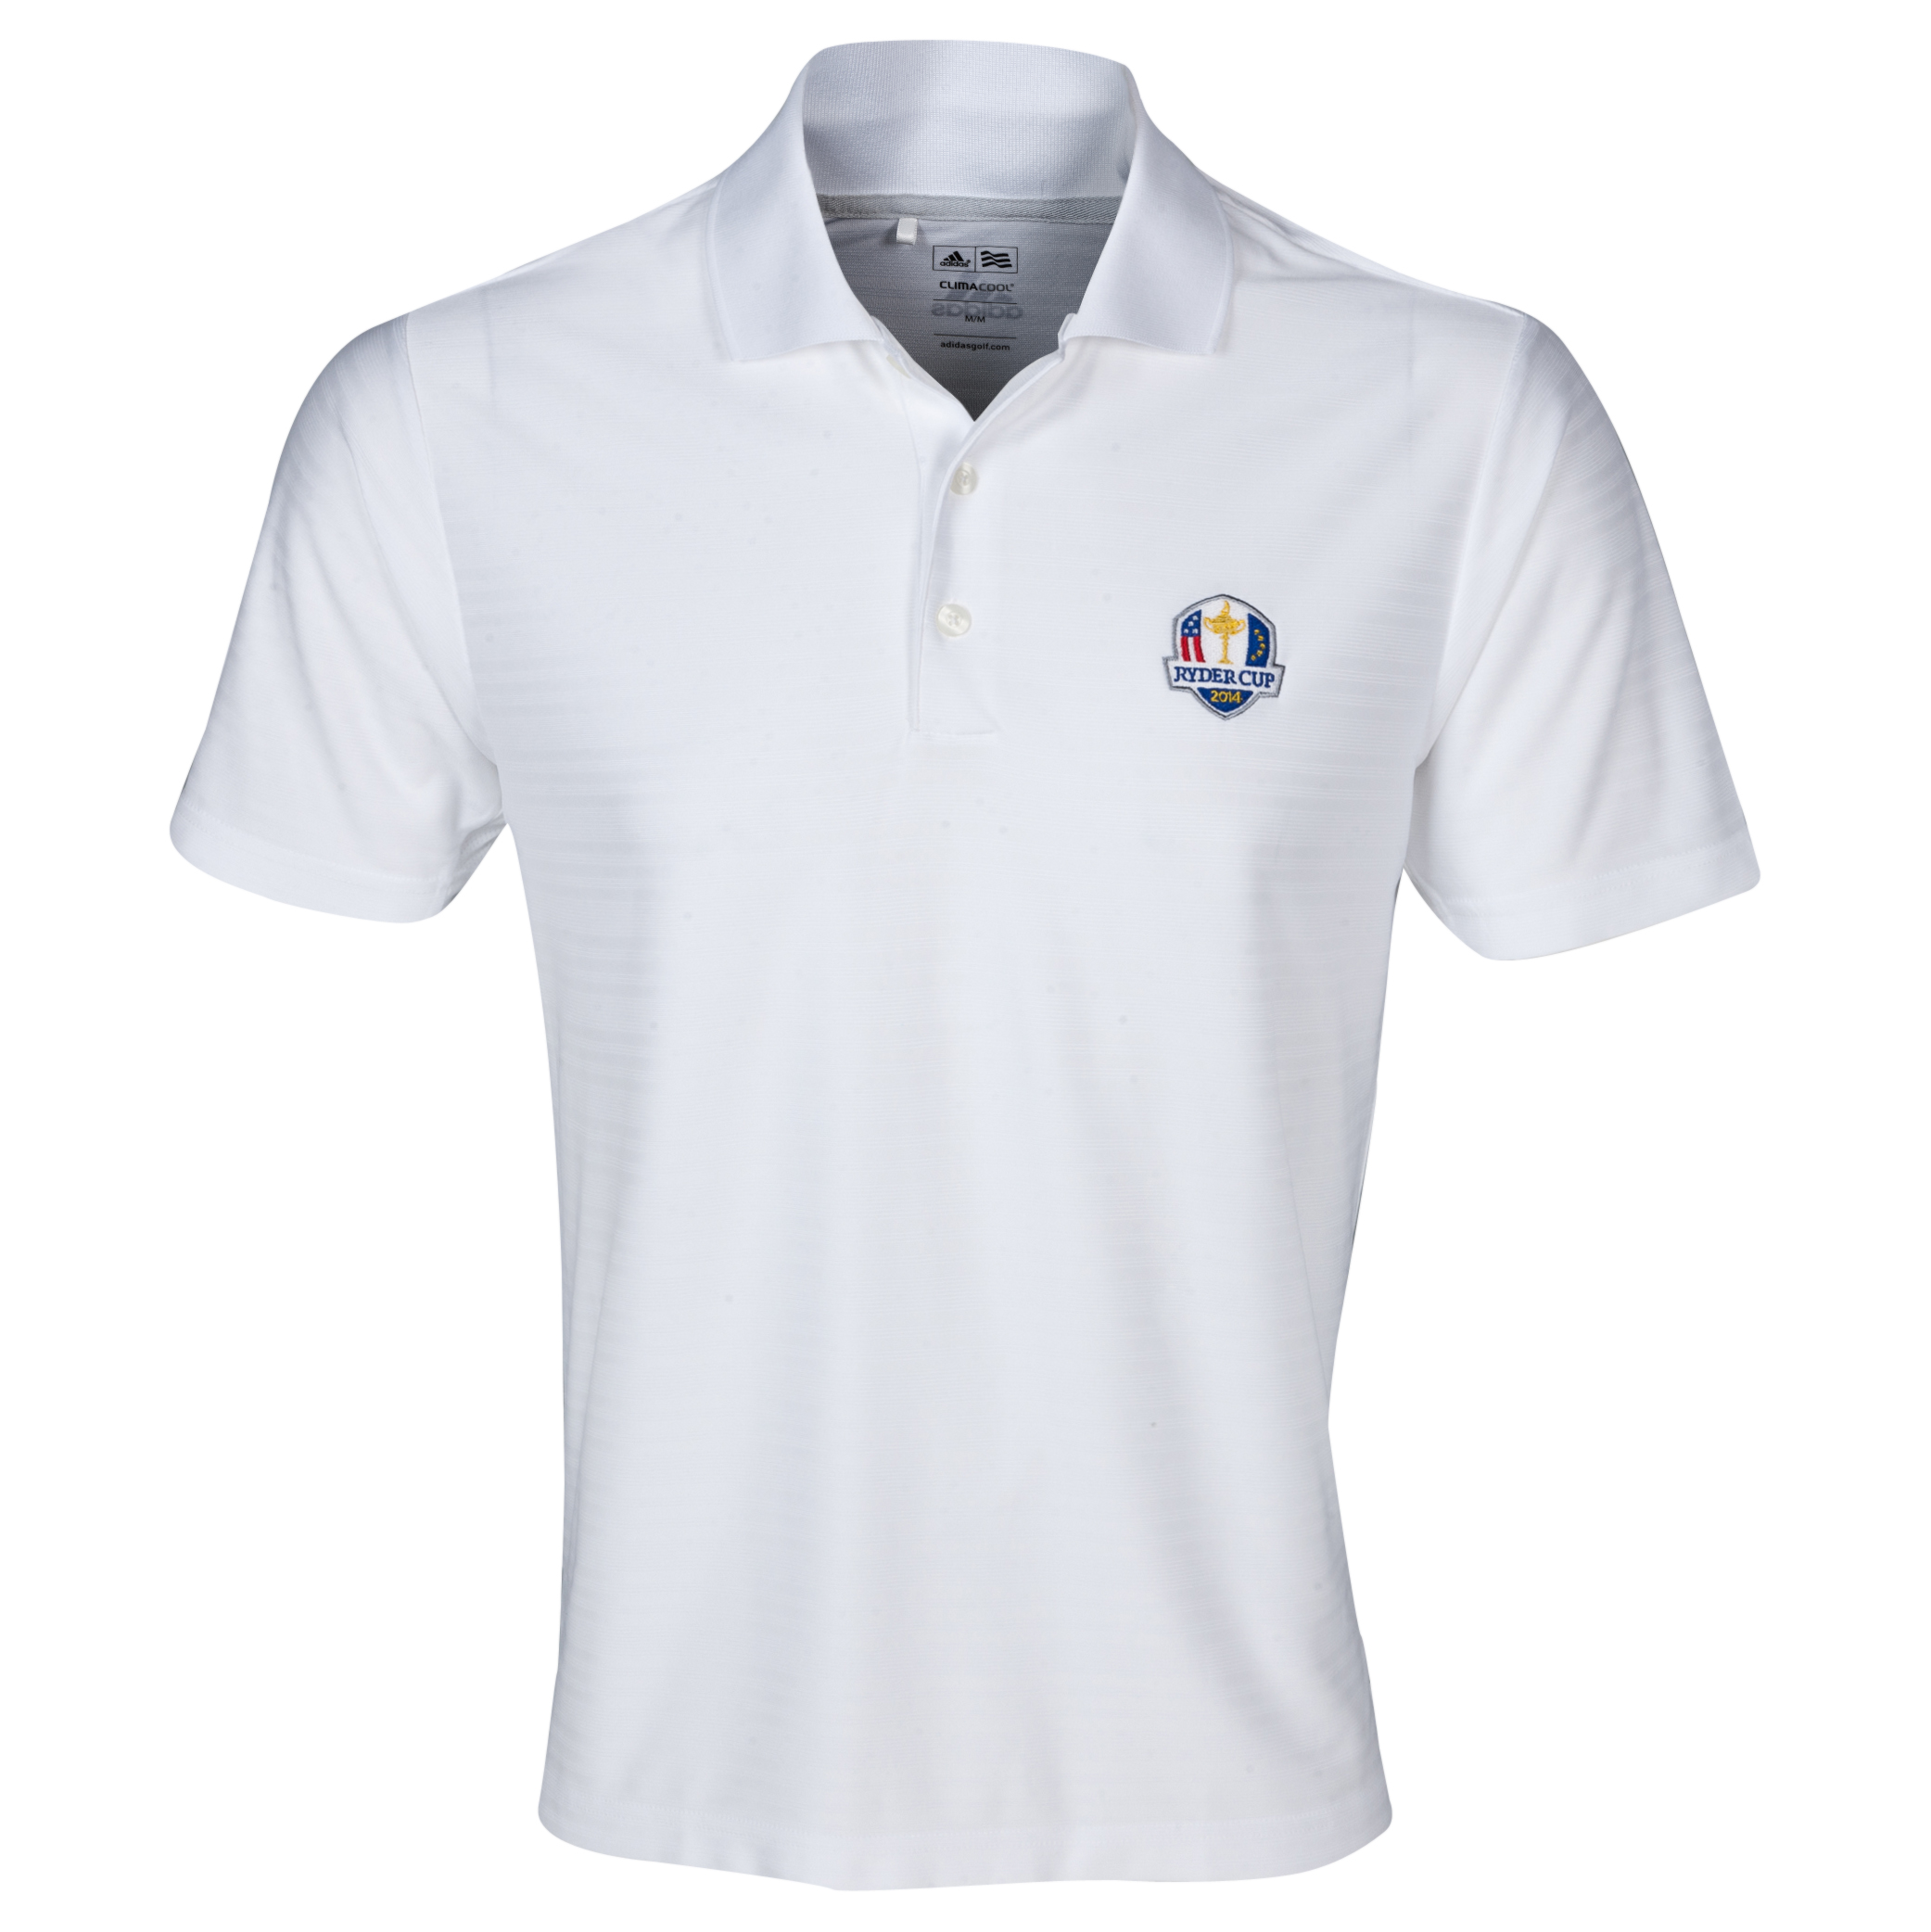 The 2014 Ryder Cup adidas ClimaCool Textured Solid Polo White